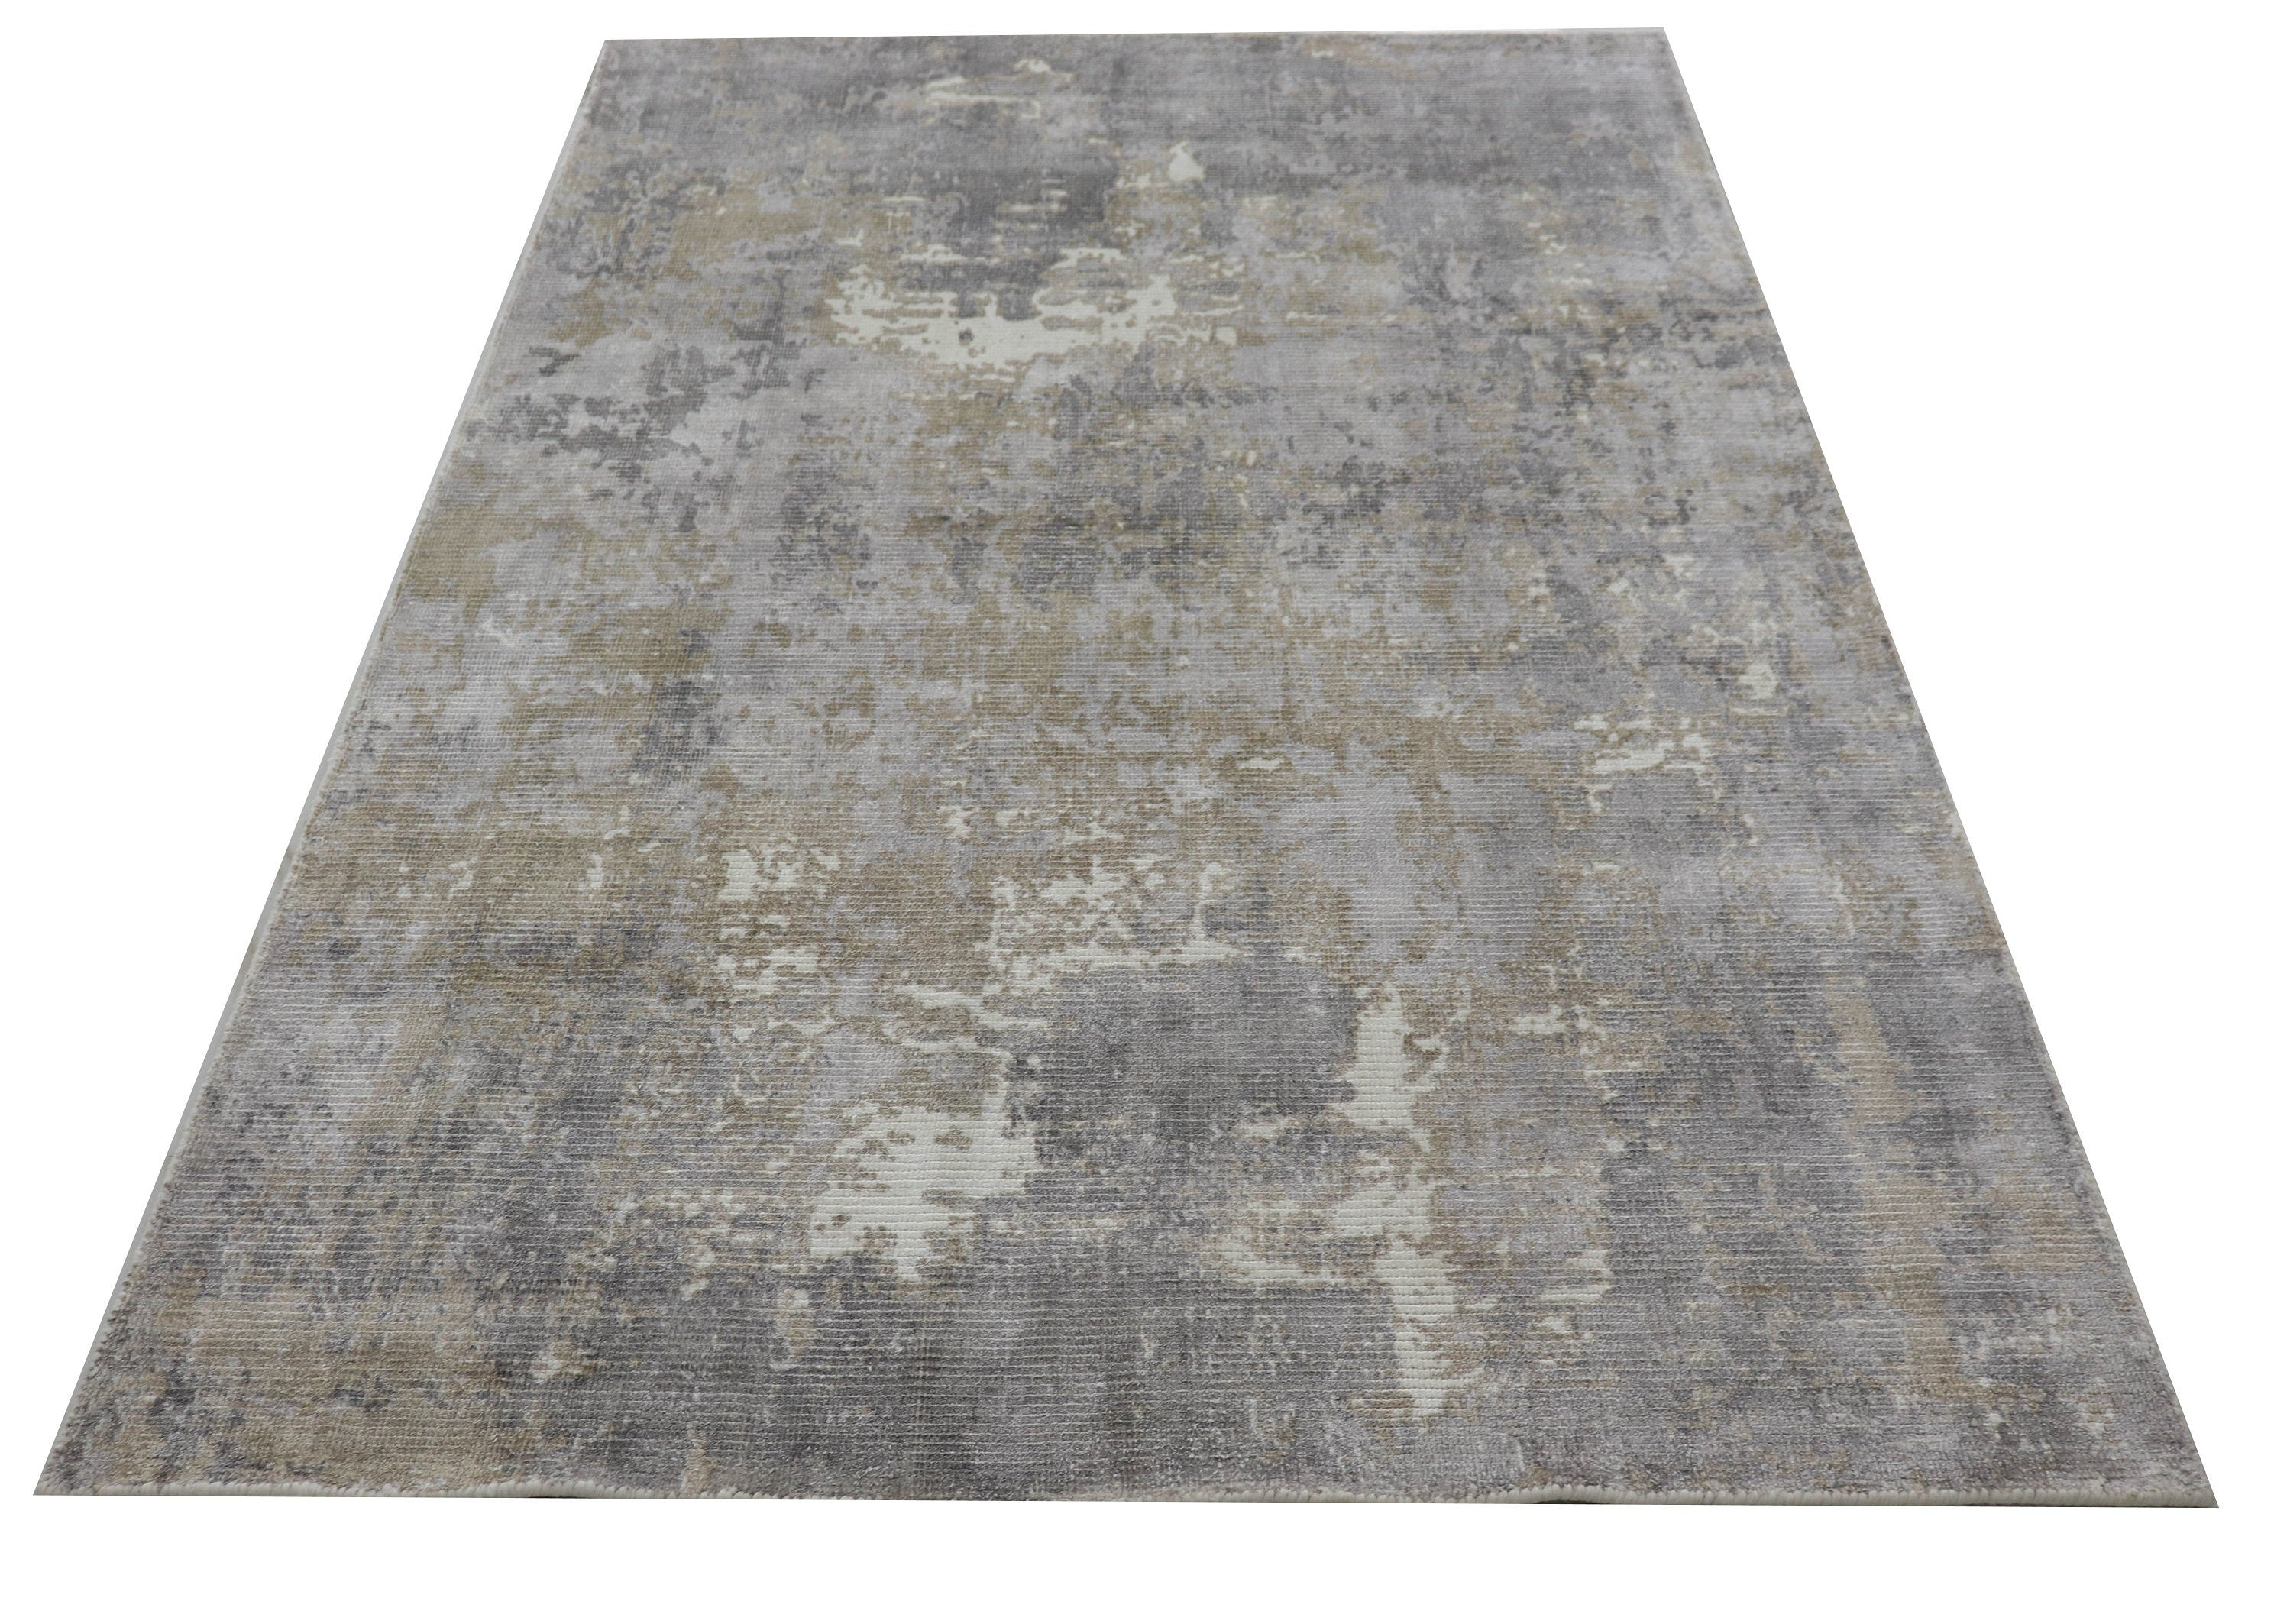 Muted Faded Turkish area rug ≡ Large Antique Faded Area Rug≡Rustic antique Decor ≡ decorative rug ≡ Turkish Faded Nomadic Carpet  DN31014